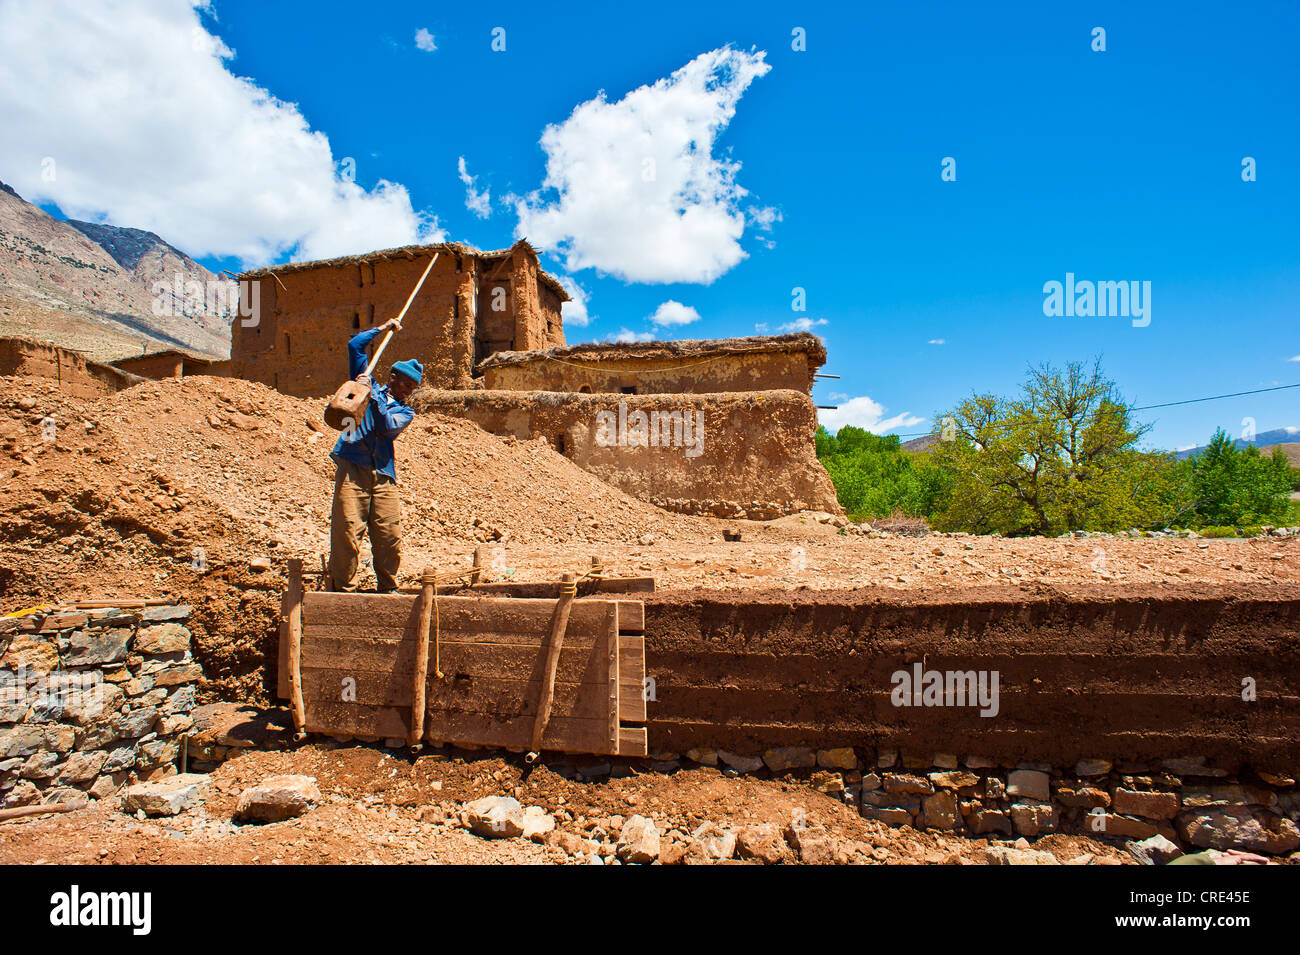 Worker building a rammed-earth wall for a new house, the clay is compacted in a mould box with a wooden pestle, - Stock Image